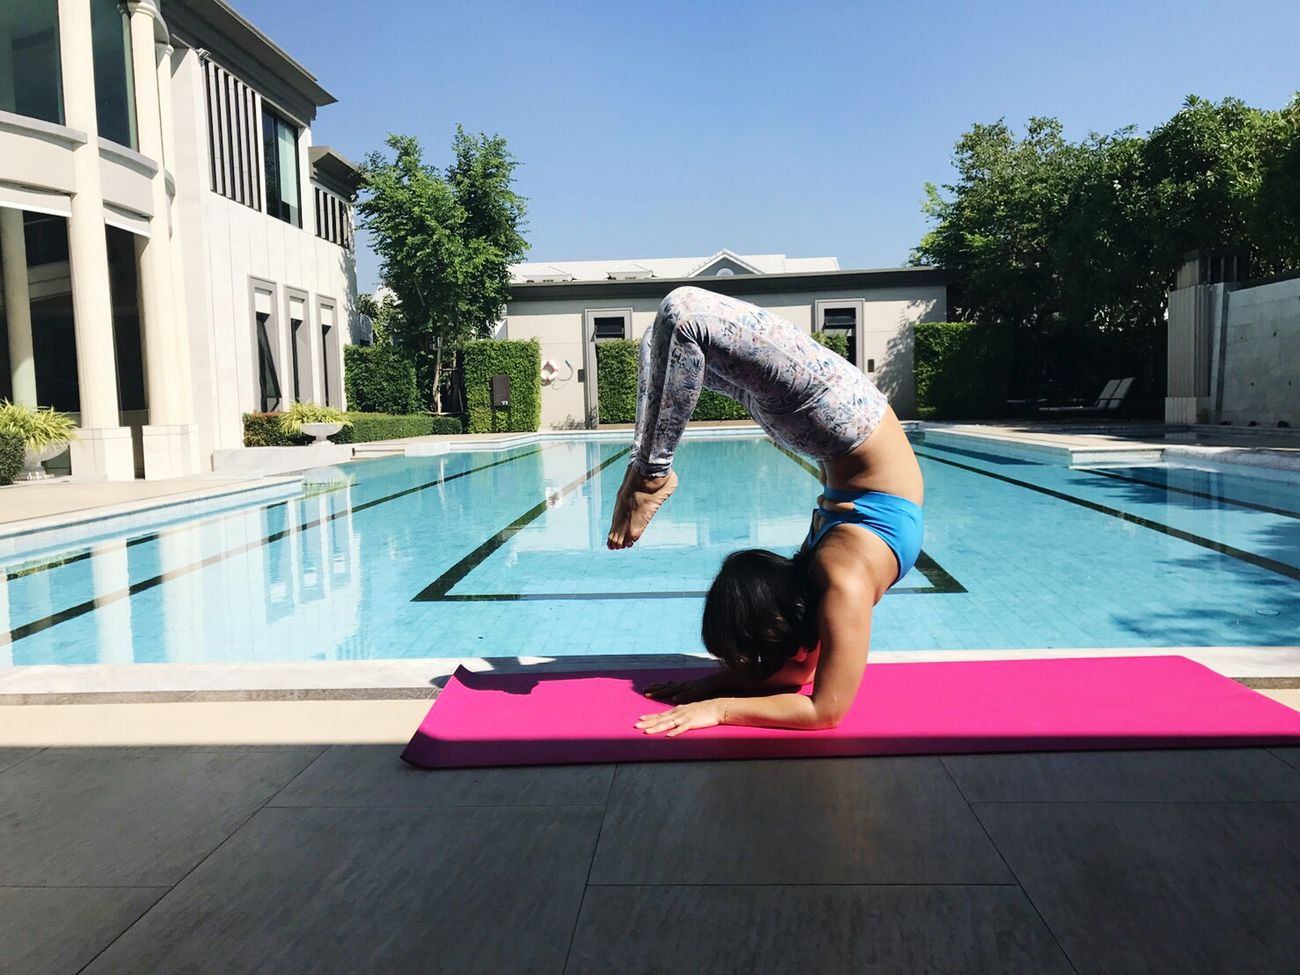 A little bit of sunbathing this morning 😀. Embrace the energy for the sun and yoga practice. Swimming Pool Summer Outdoors Day Sky Happinessisachoice Lifeisjourney Leisure Activity Relaxation Healthy Lifestyle Yoga Inversion Upside Down Scorpion Yoga Lover Yogainspiration Yogateacher Yogaeverywhere Yogalife